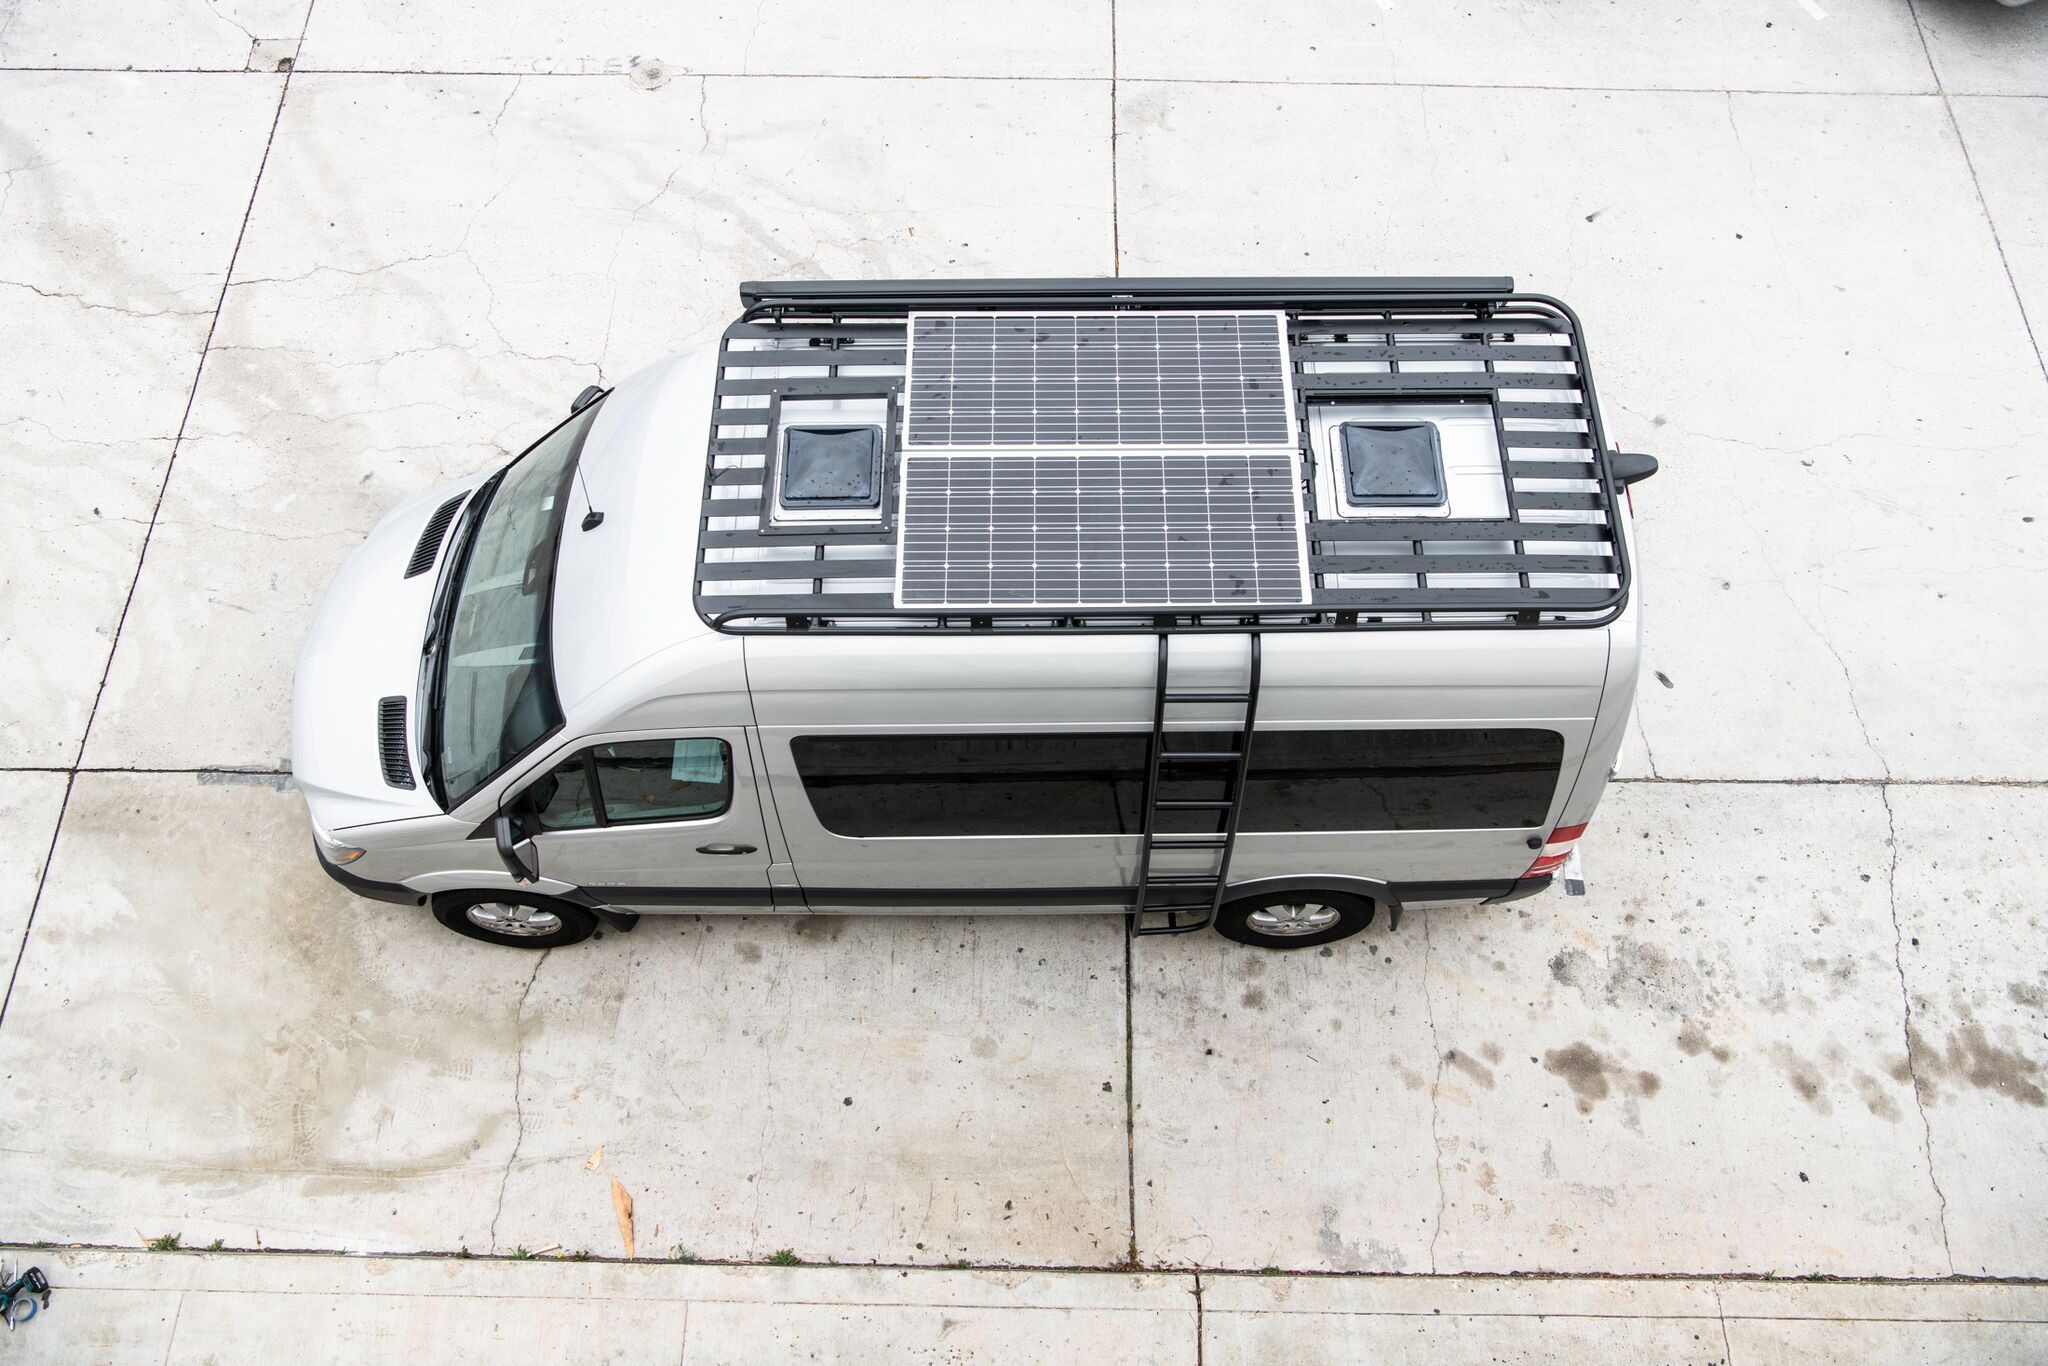 360 Watt Solar System - Includes: wiring, solar charger, two 180 watt solar panels. Designed to be installed on our roof rack or mounted to the factory track rails.